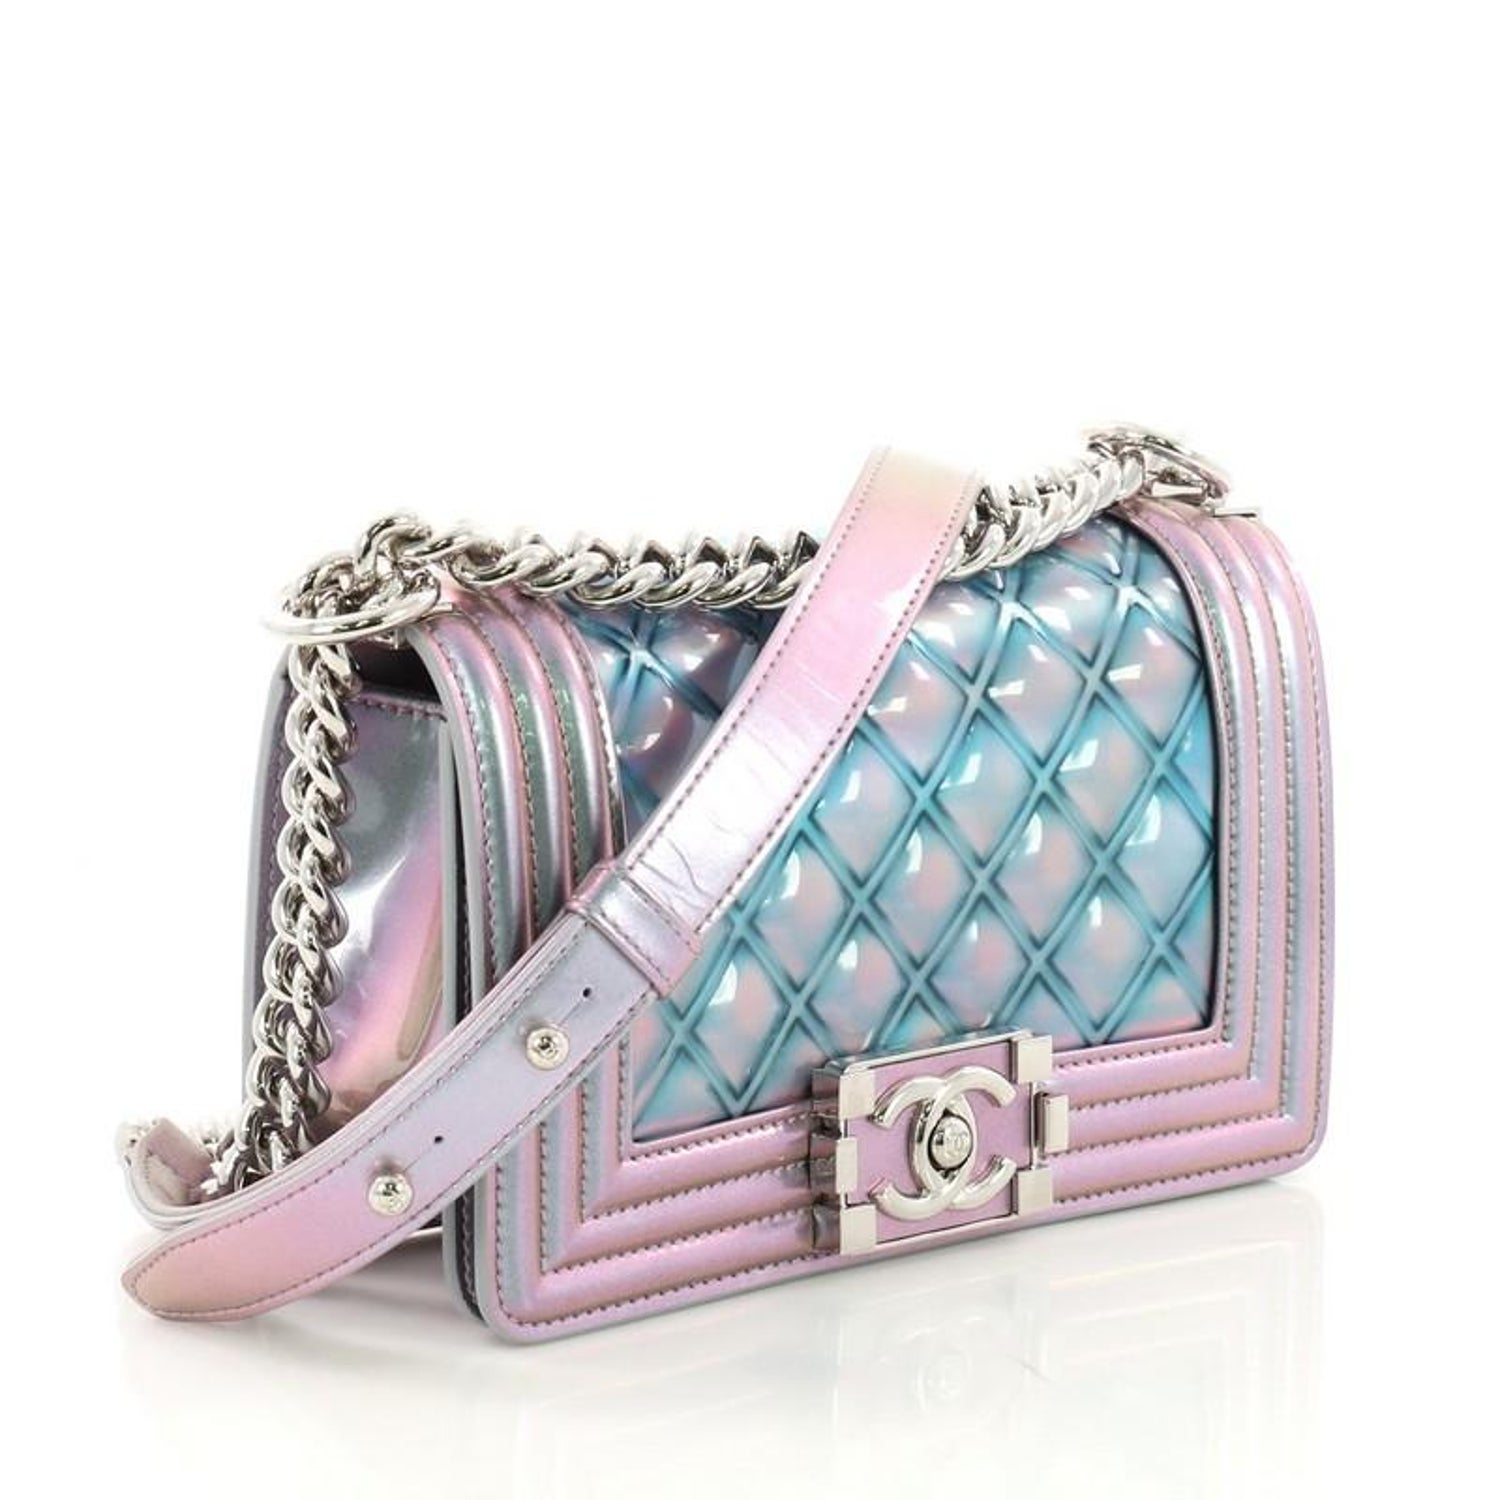 5acd496b9314 Chanel Boy Flap Bag Quilted Holographic PVC Small For Sale at 1stdibs